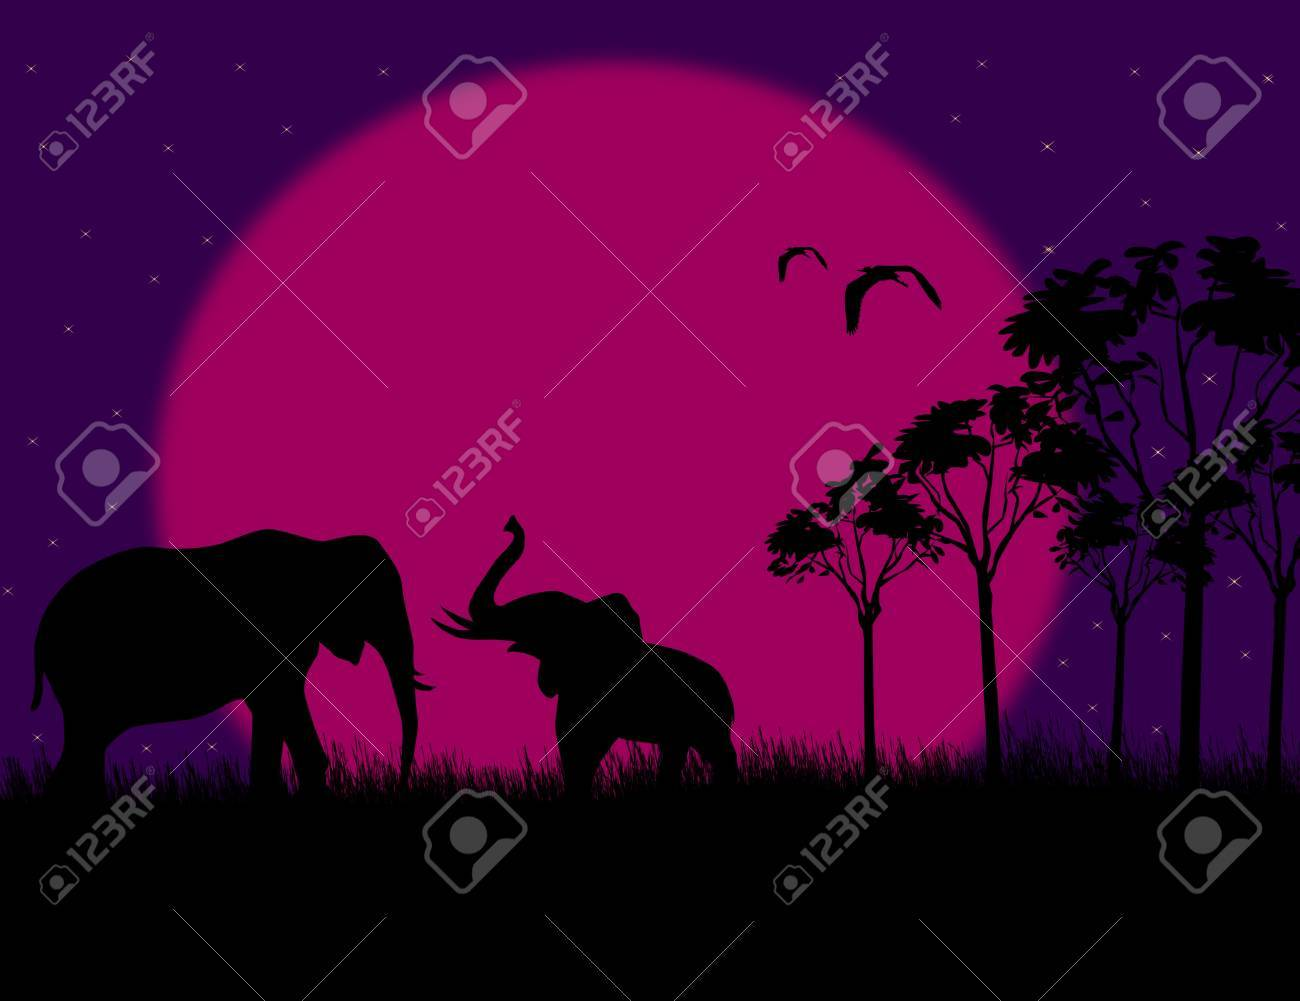 Silhouette illustration of a two elephants on night landscape, illustration Stock Vector - 17590534